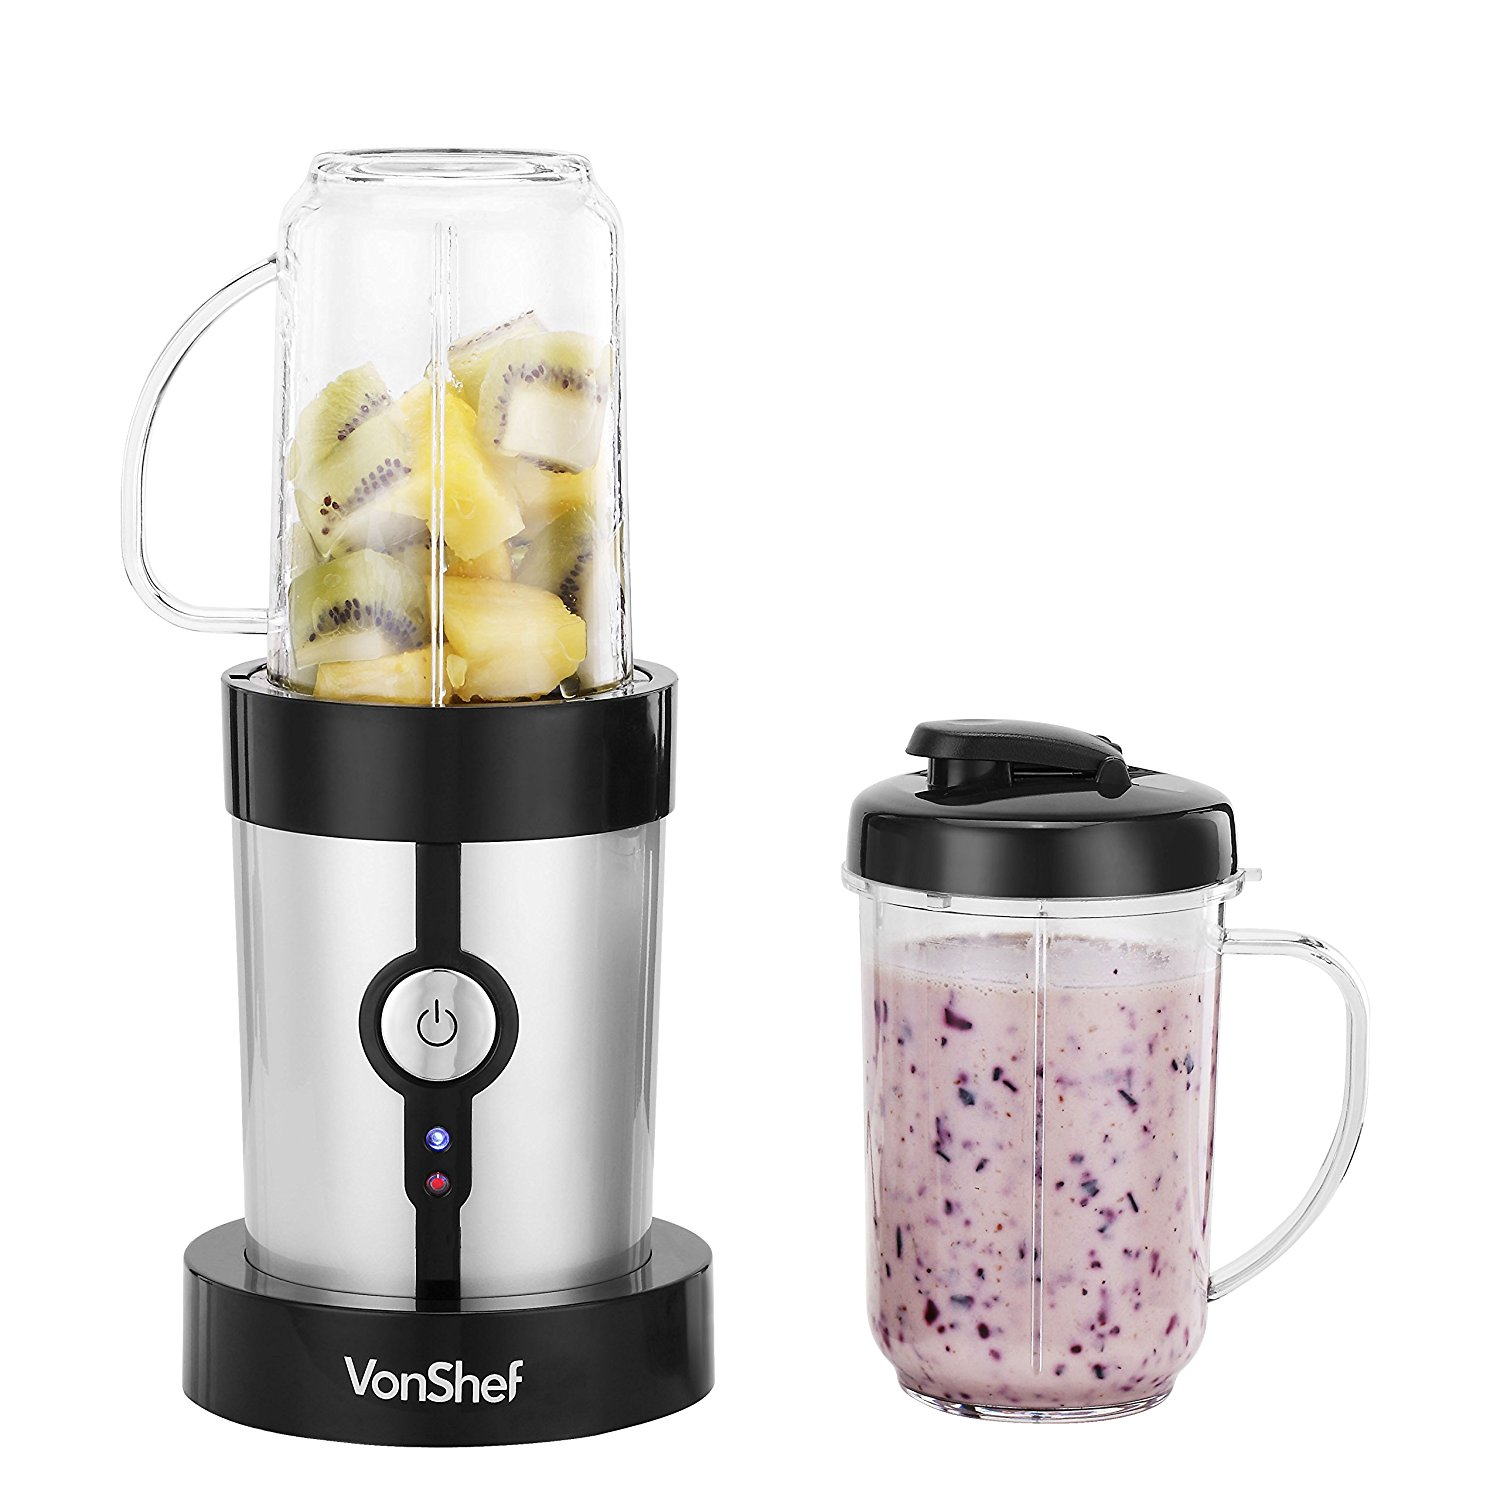 vonshef 4 in 1 blender review does it blend cheap smoothie blenders. Black Bedroom Furniture Sets. Home Design Ideas